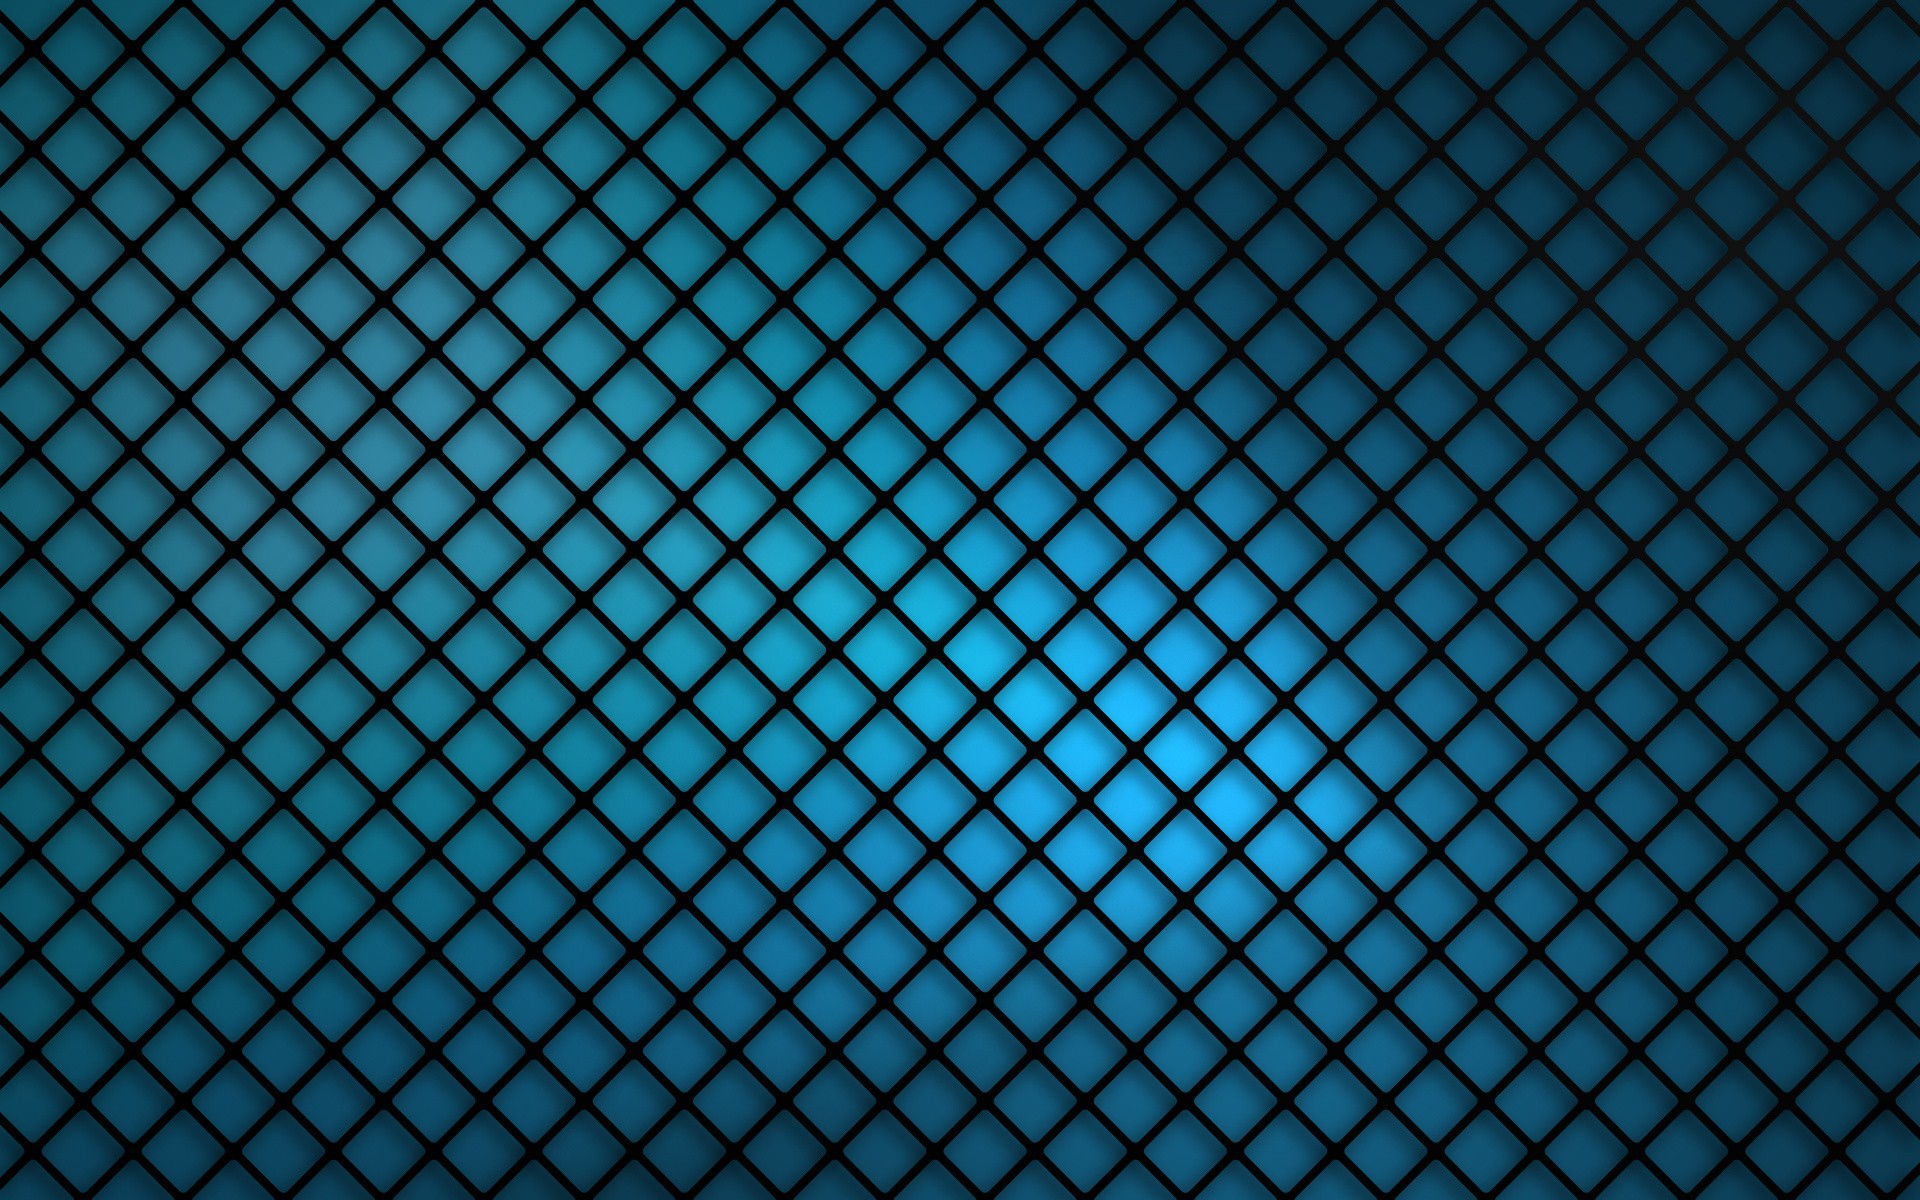 abstract texture wallpapers - photo #6